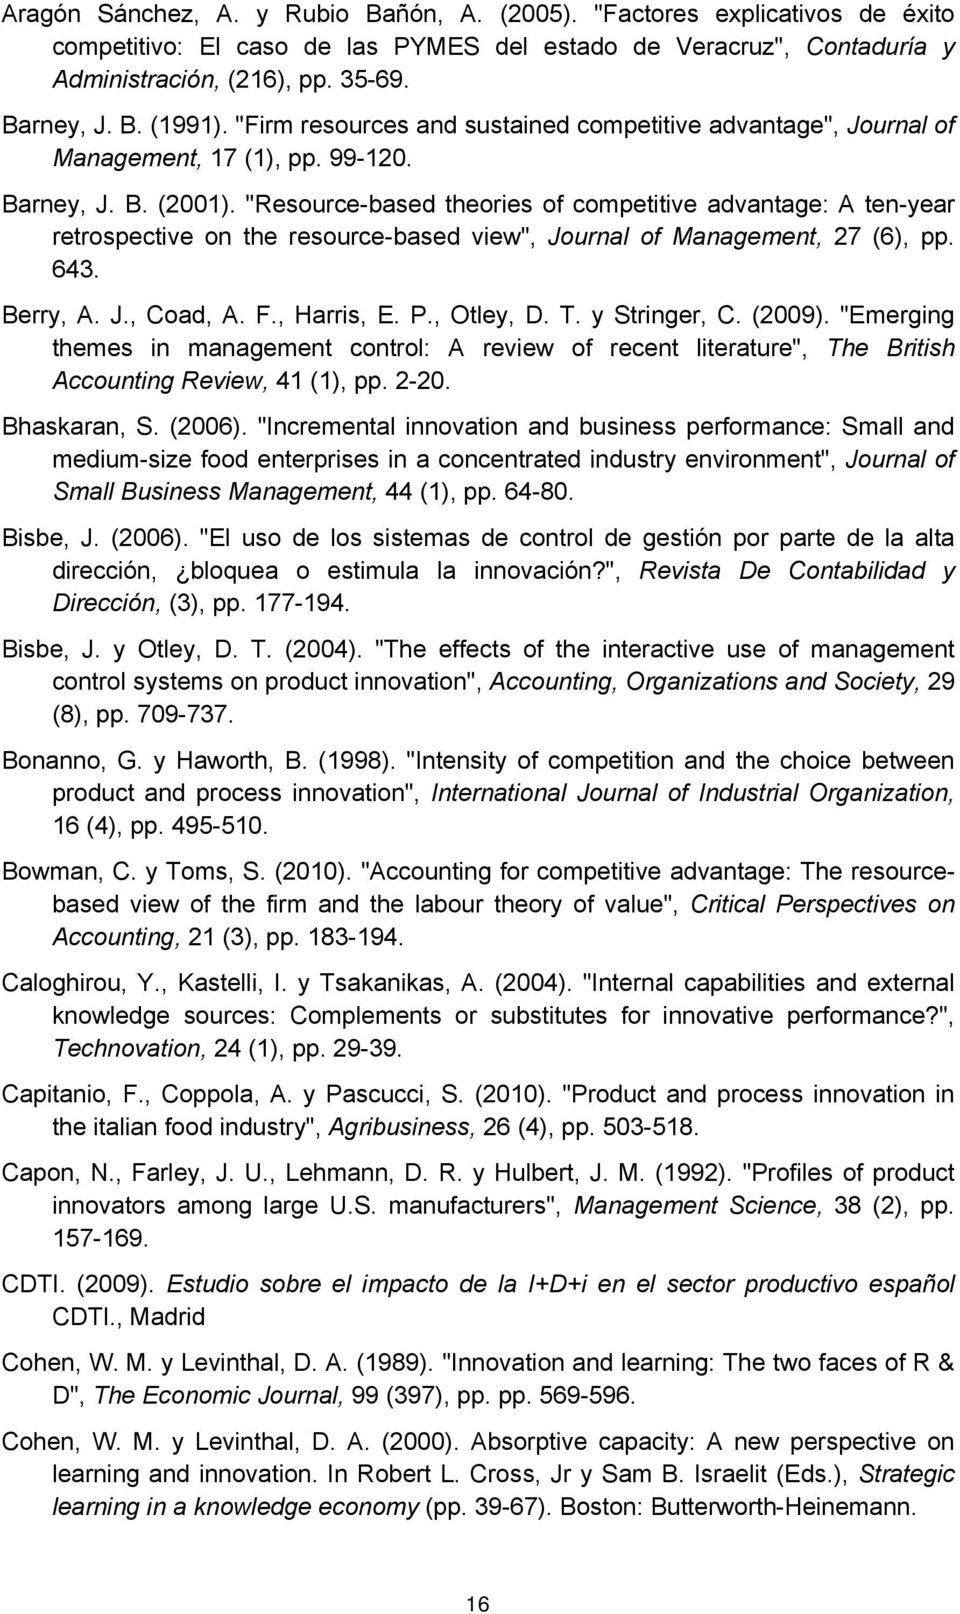 """Resource-based theories of competitive advantage: A ten-year retrospective on the resource-based view"", Journal of Management, 27 (6), pp. 643. Berry, A. J., Coad, A. F., Harris, E. P., Otley, D. T."